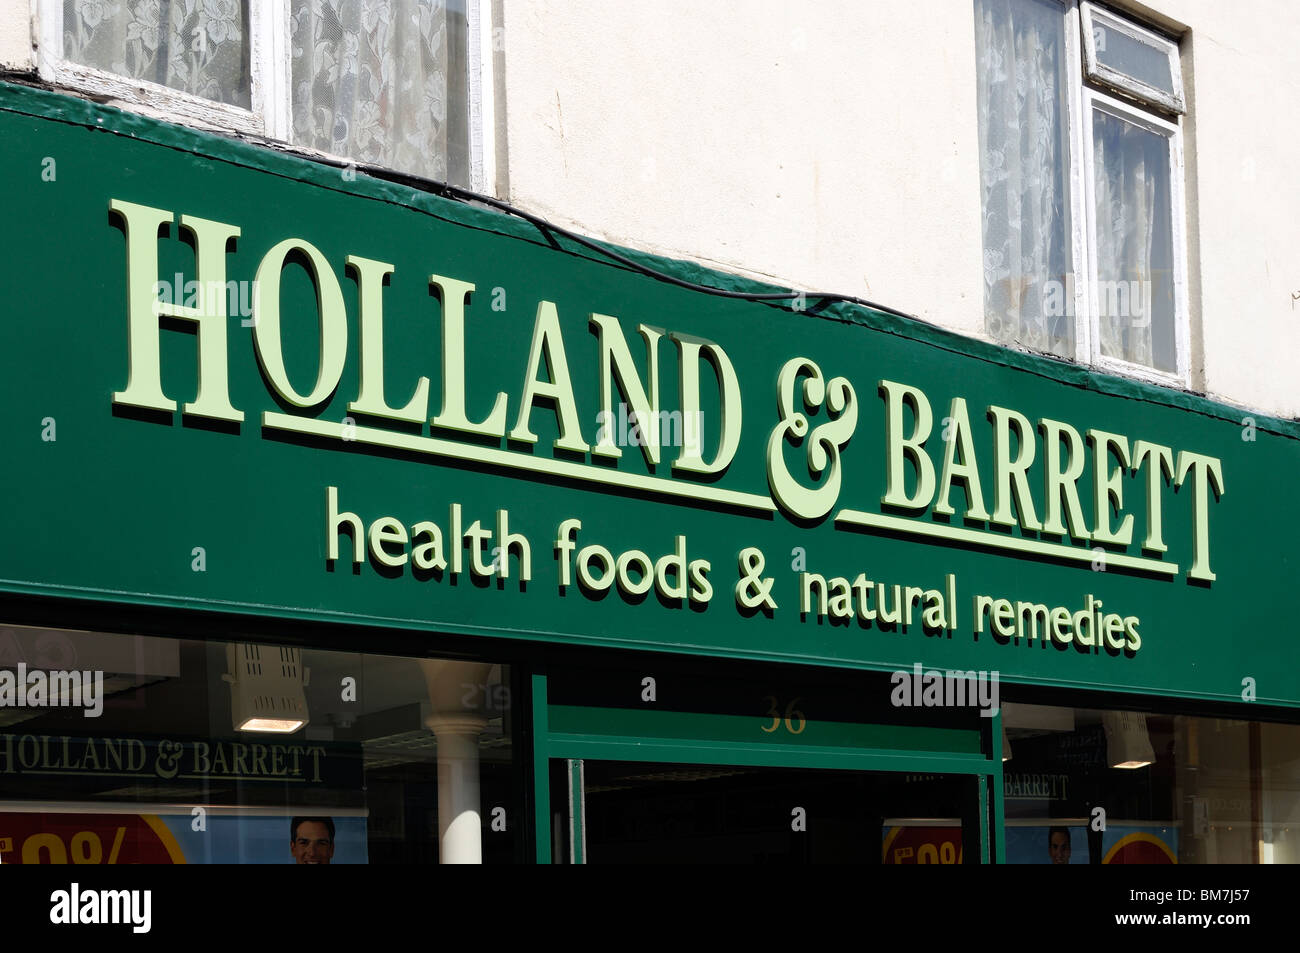 a holland and barrett health food store in devon, uk - Stock Image